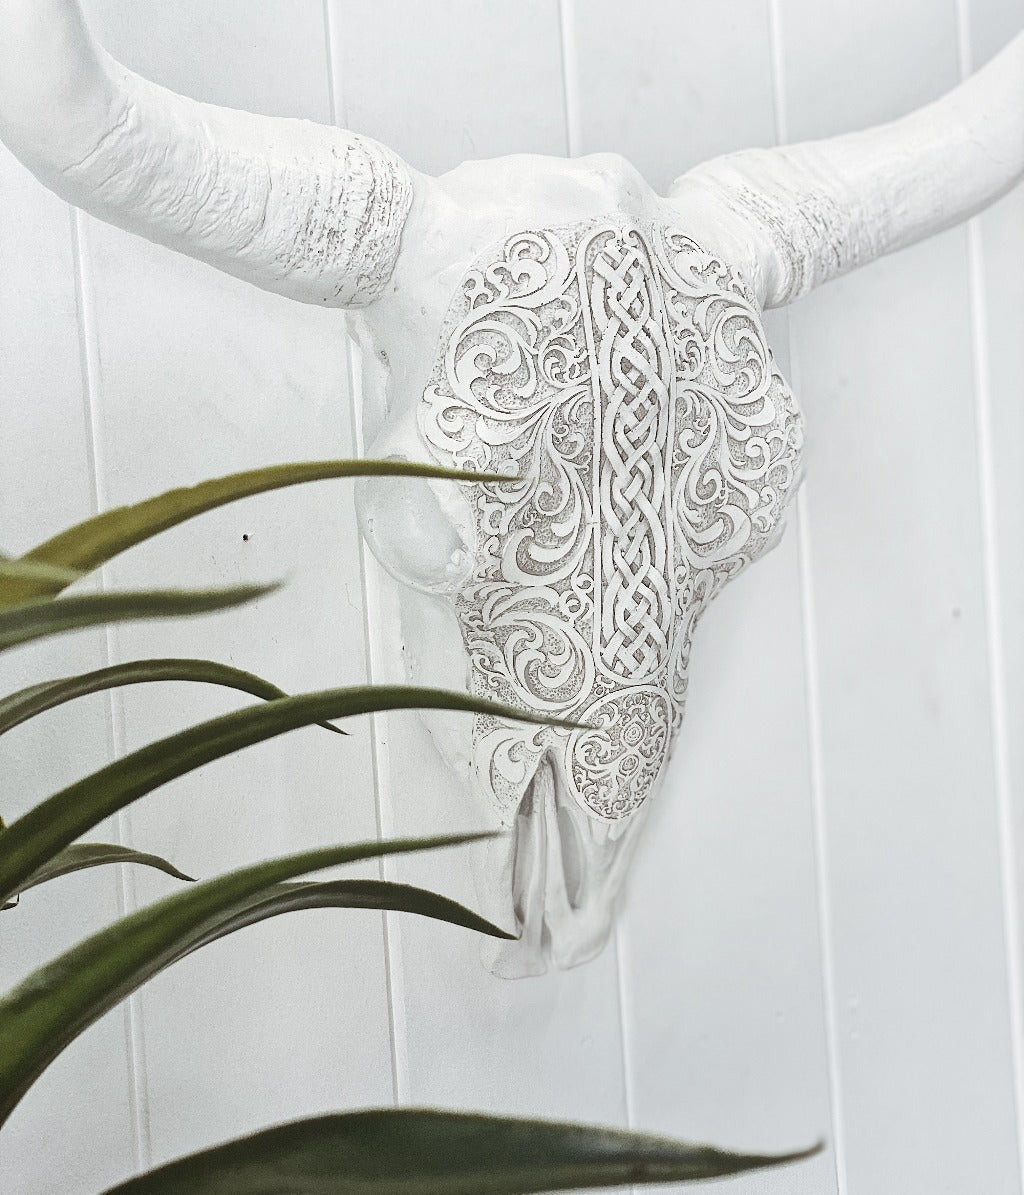 White Tribal Pattern Cow Skull - perfect for styling your Boho home, place in your entry way, living room, office or the bedroom - Polyresin cow skull wall art - light weight and easily wall mounted - ready to hang - 42cm |Bliss Gifts & Homewares - Unit 8, 259 Princes Hwy Ulladulla - Shop Online & In store - 0427795959, 44541523 - Australia wide shipping